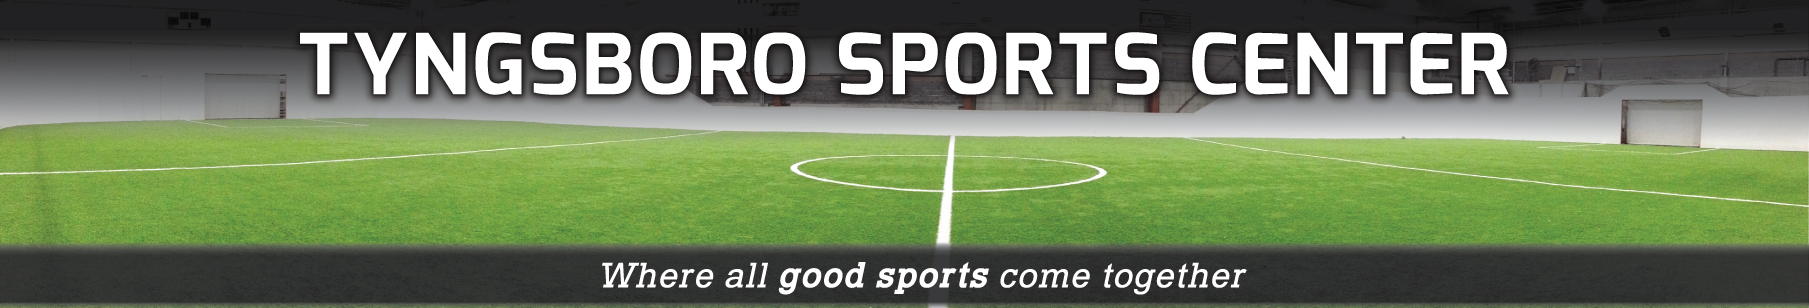 flag football plays 5 on 5. Multisports (Ages 3-5)